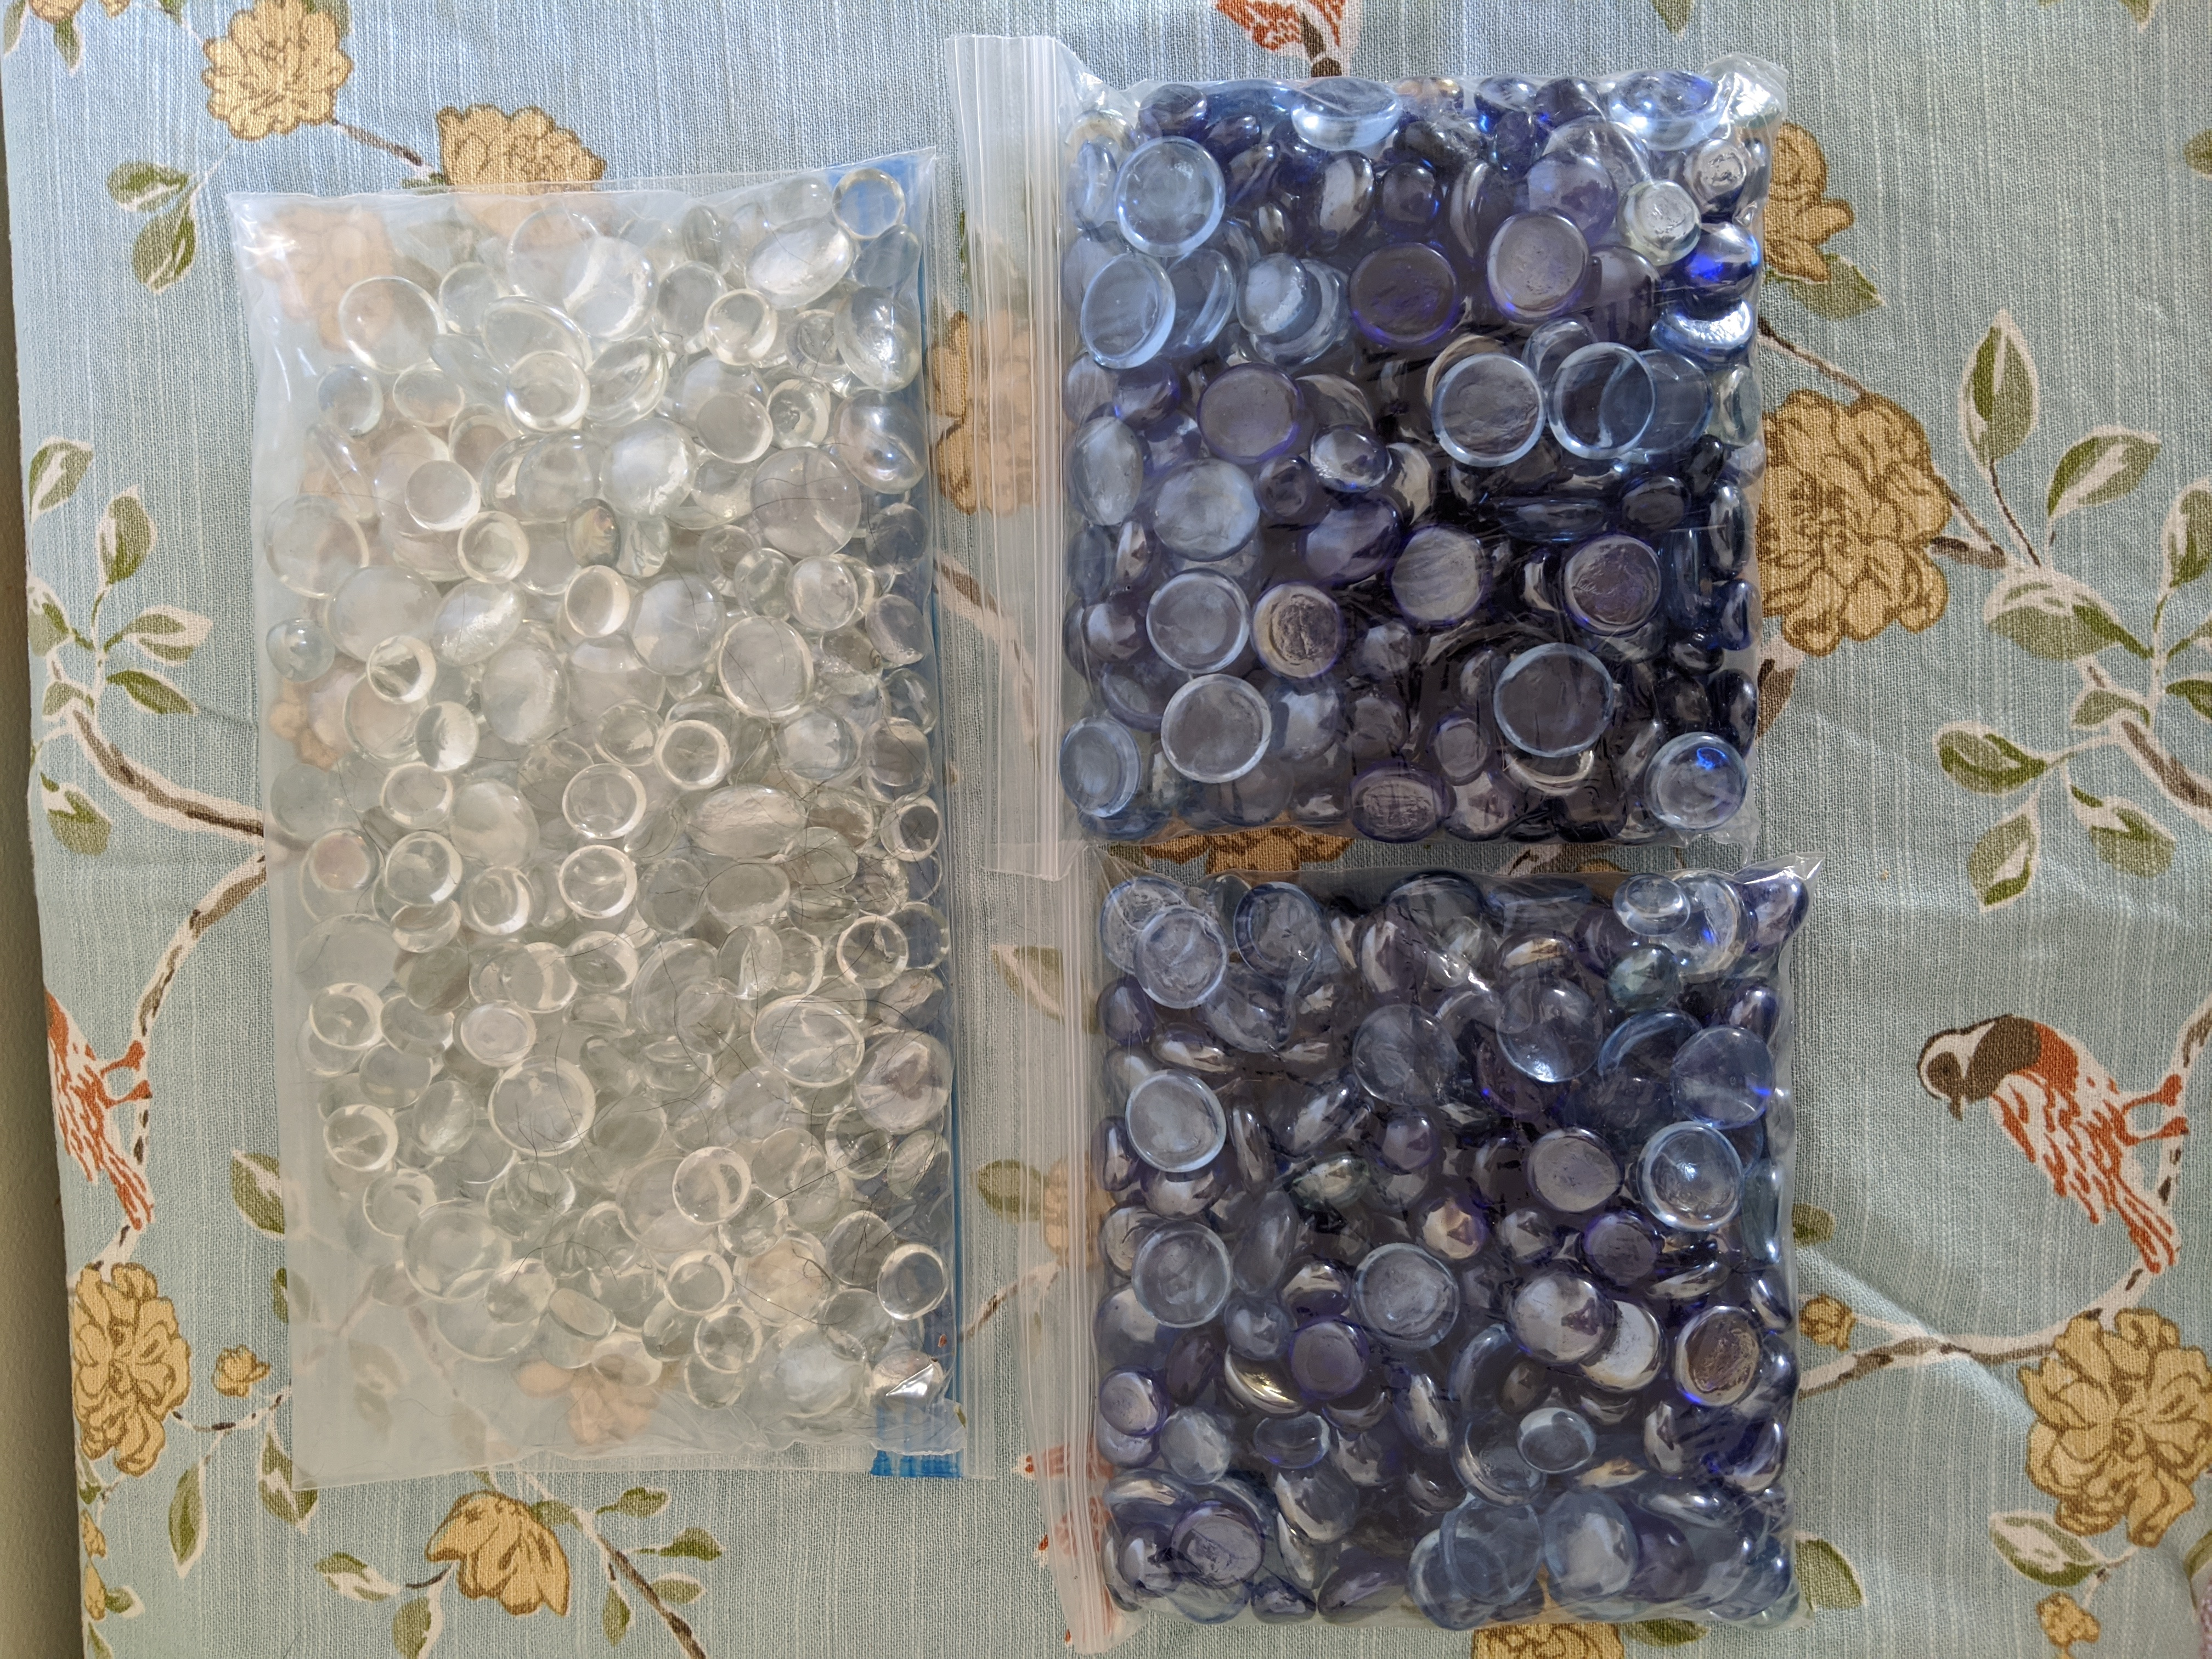 Blue And White Glass Stones